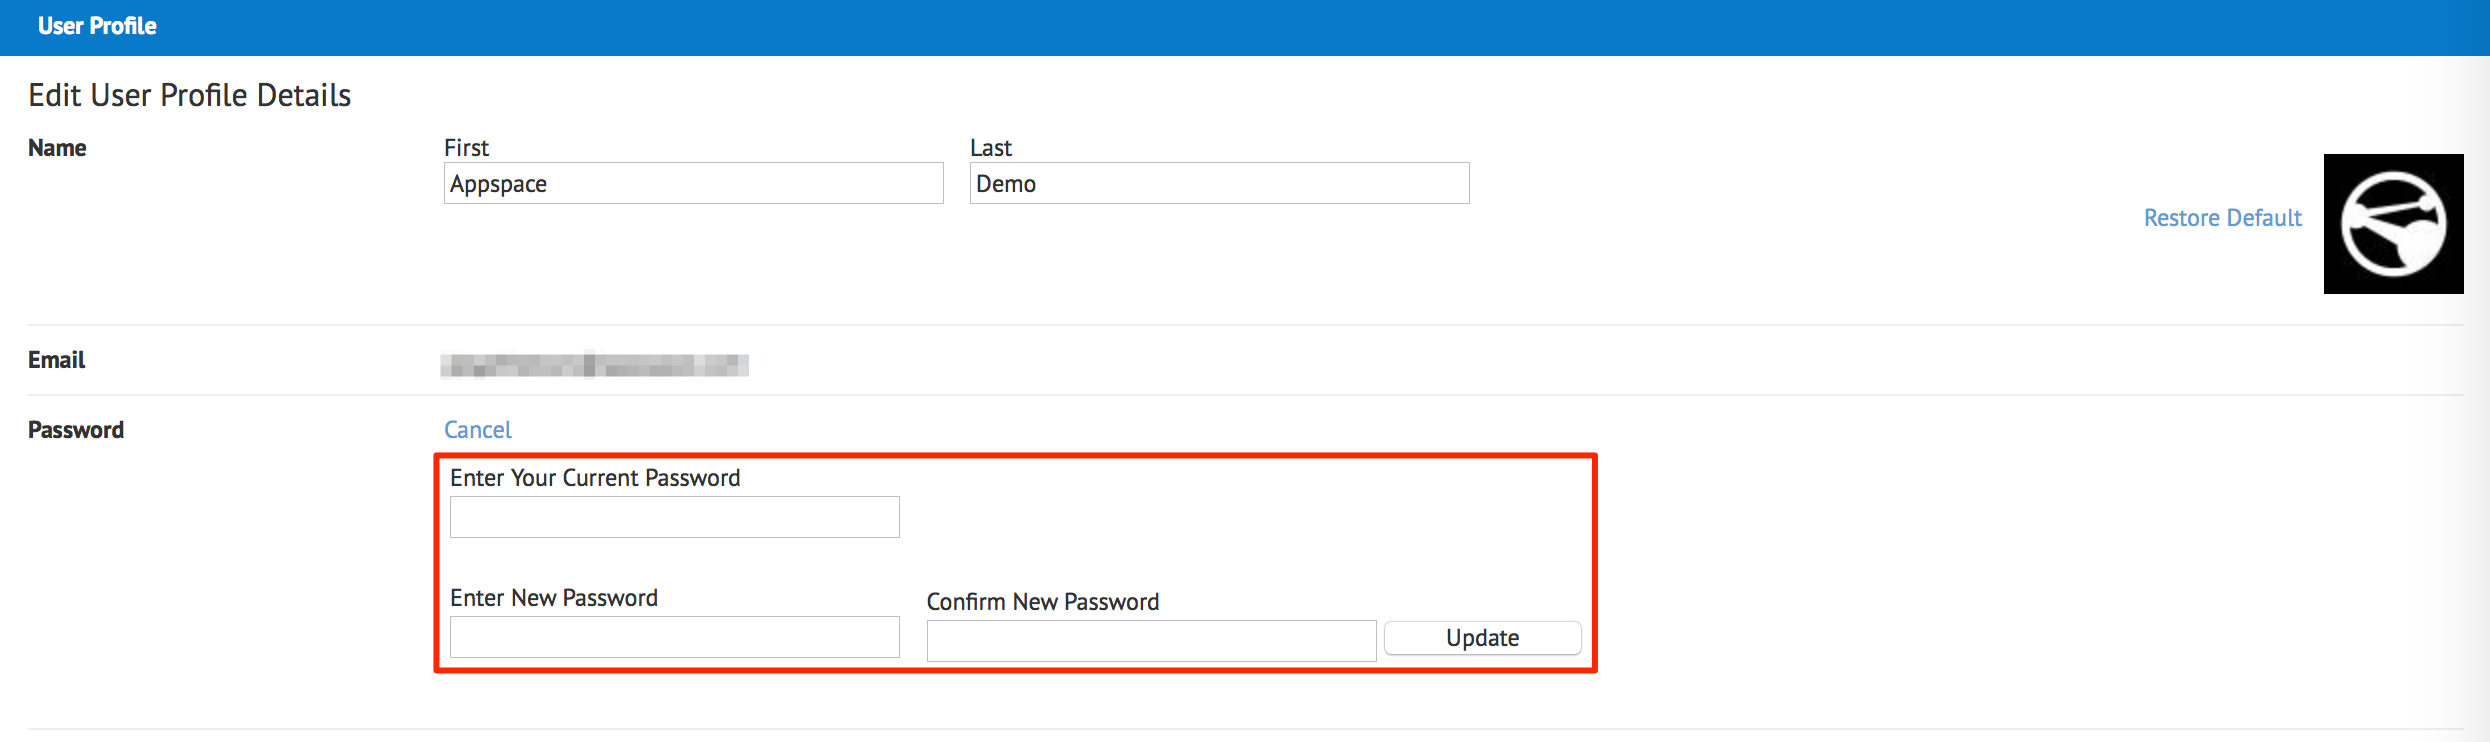 Changing and resetting password for on-premises users — Appspace v6